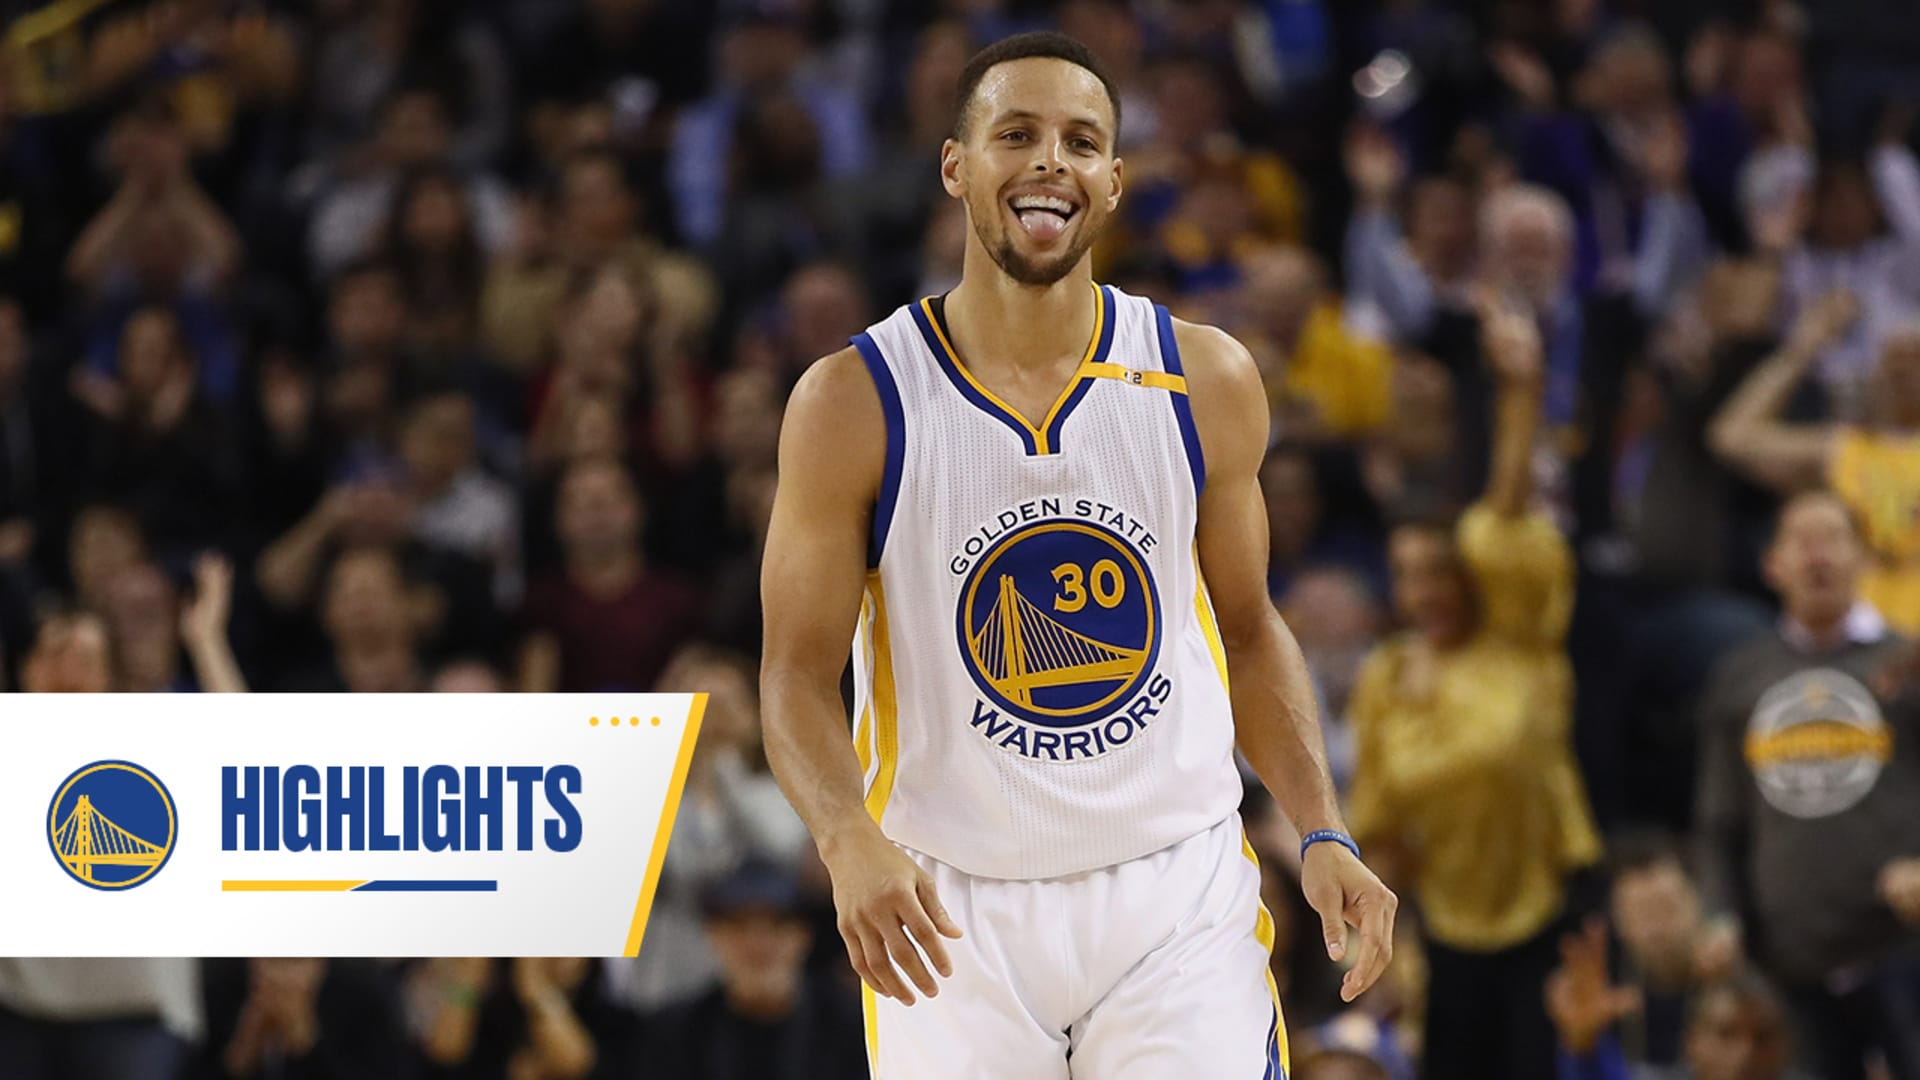 Warriors Classics: Steph Breaks Single Game 3-Point Record with 13